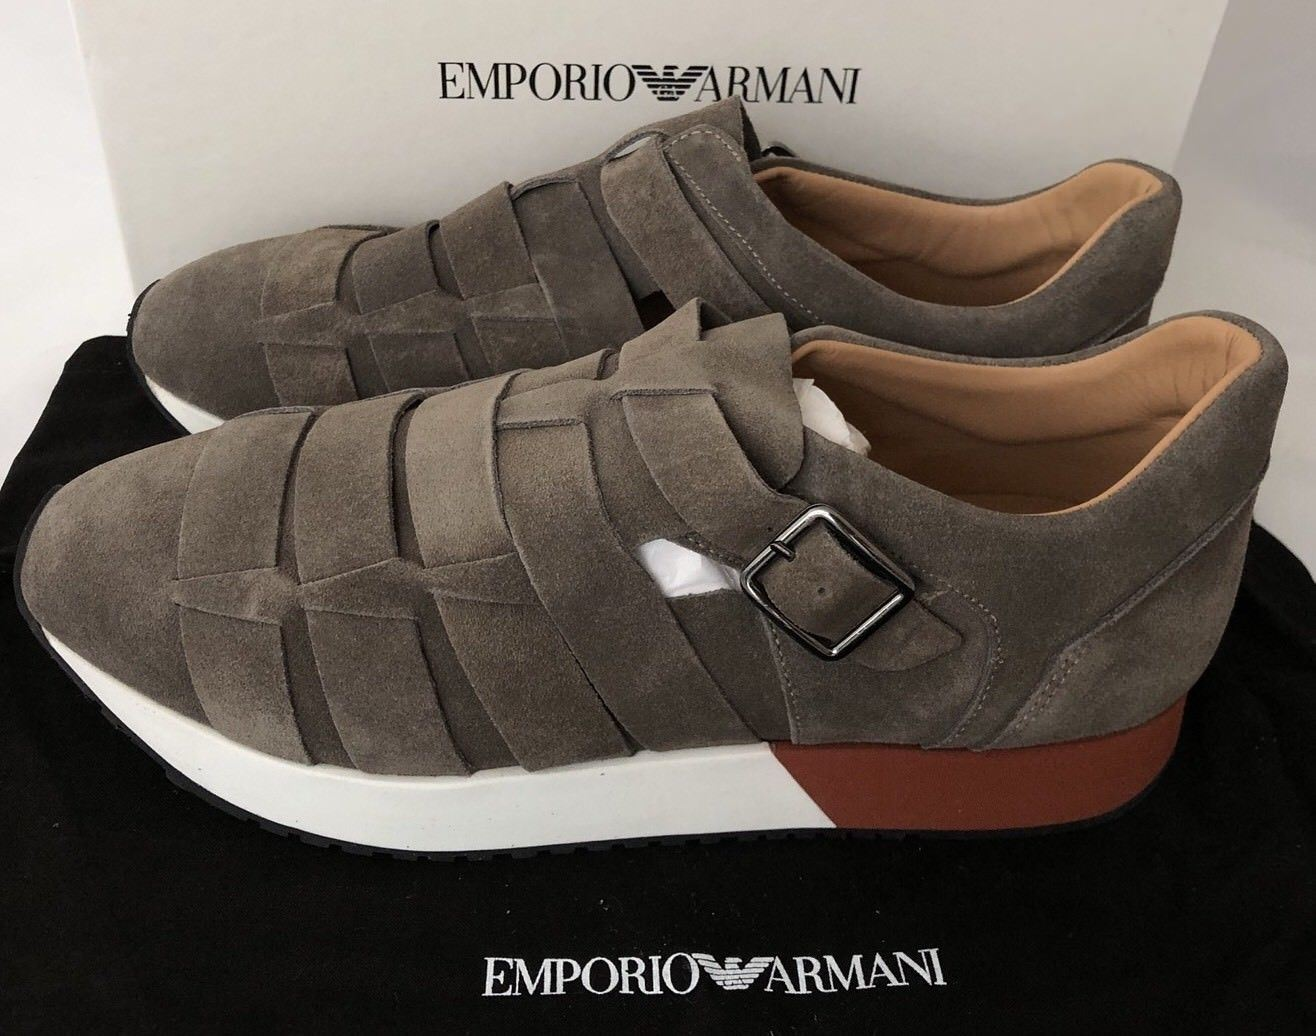 NIB $525 Emporio Armani Men's Suede Loafer Sneakers Brown 10.5 US X4L039 Spain - BAYSUPERSTORE